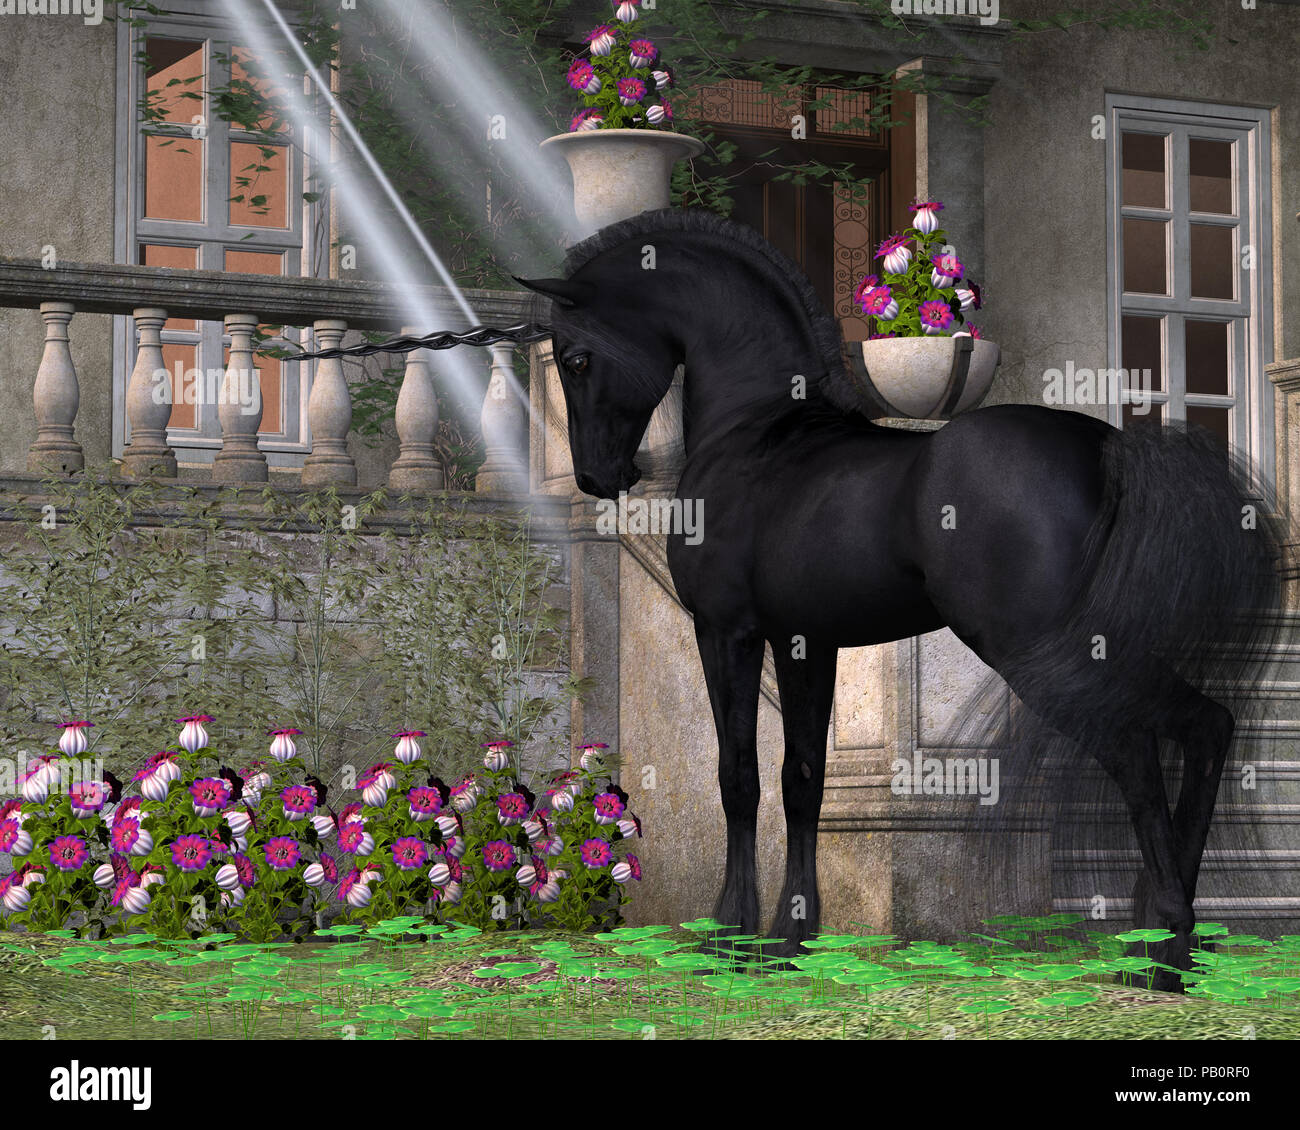 Enchanted Dark Unicorn - A black-coated magical unicorn takes an interest in pink Bell flowers near a forest cottage. - Stock Image